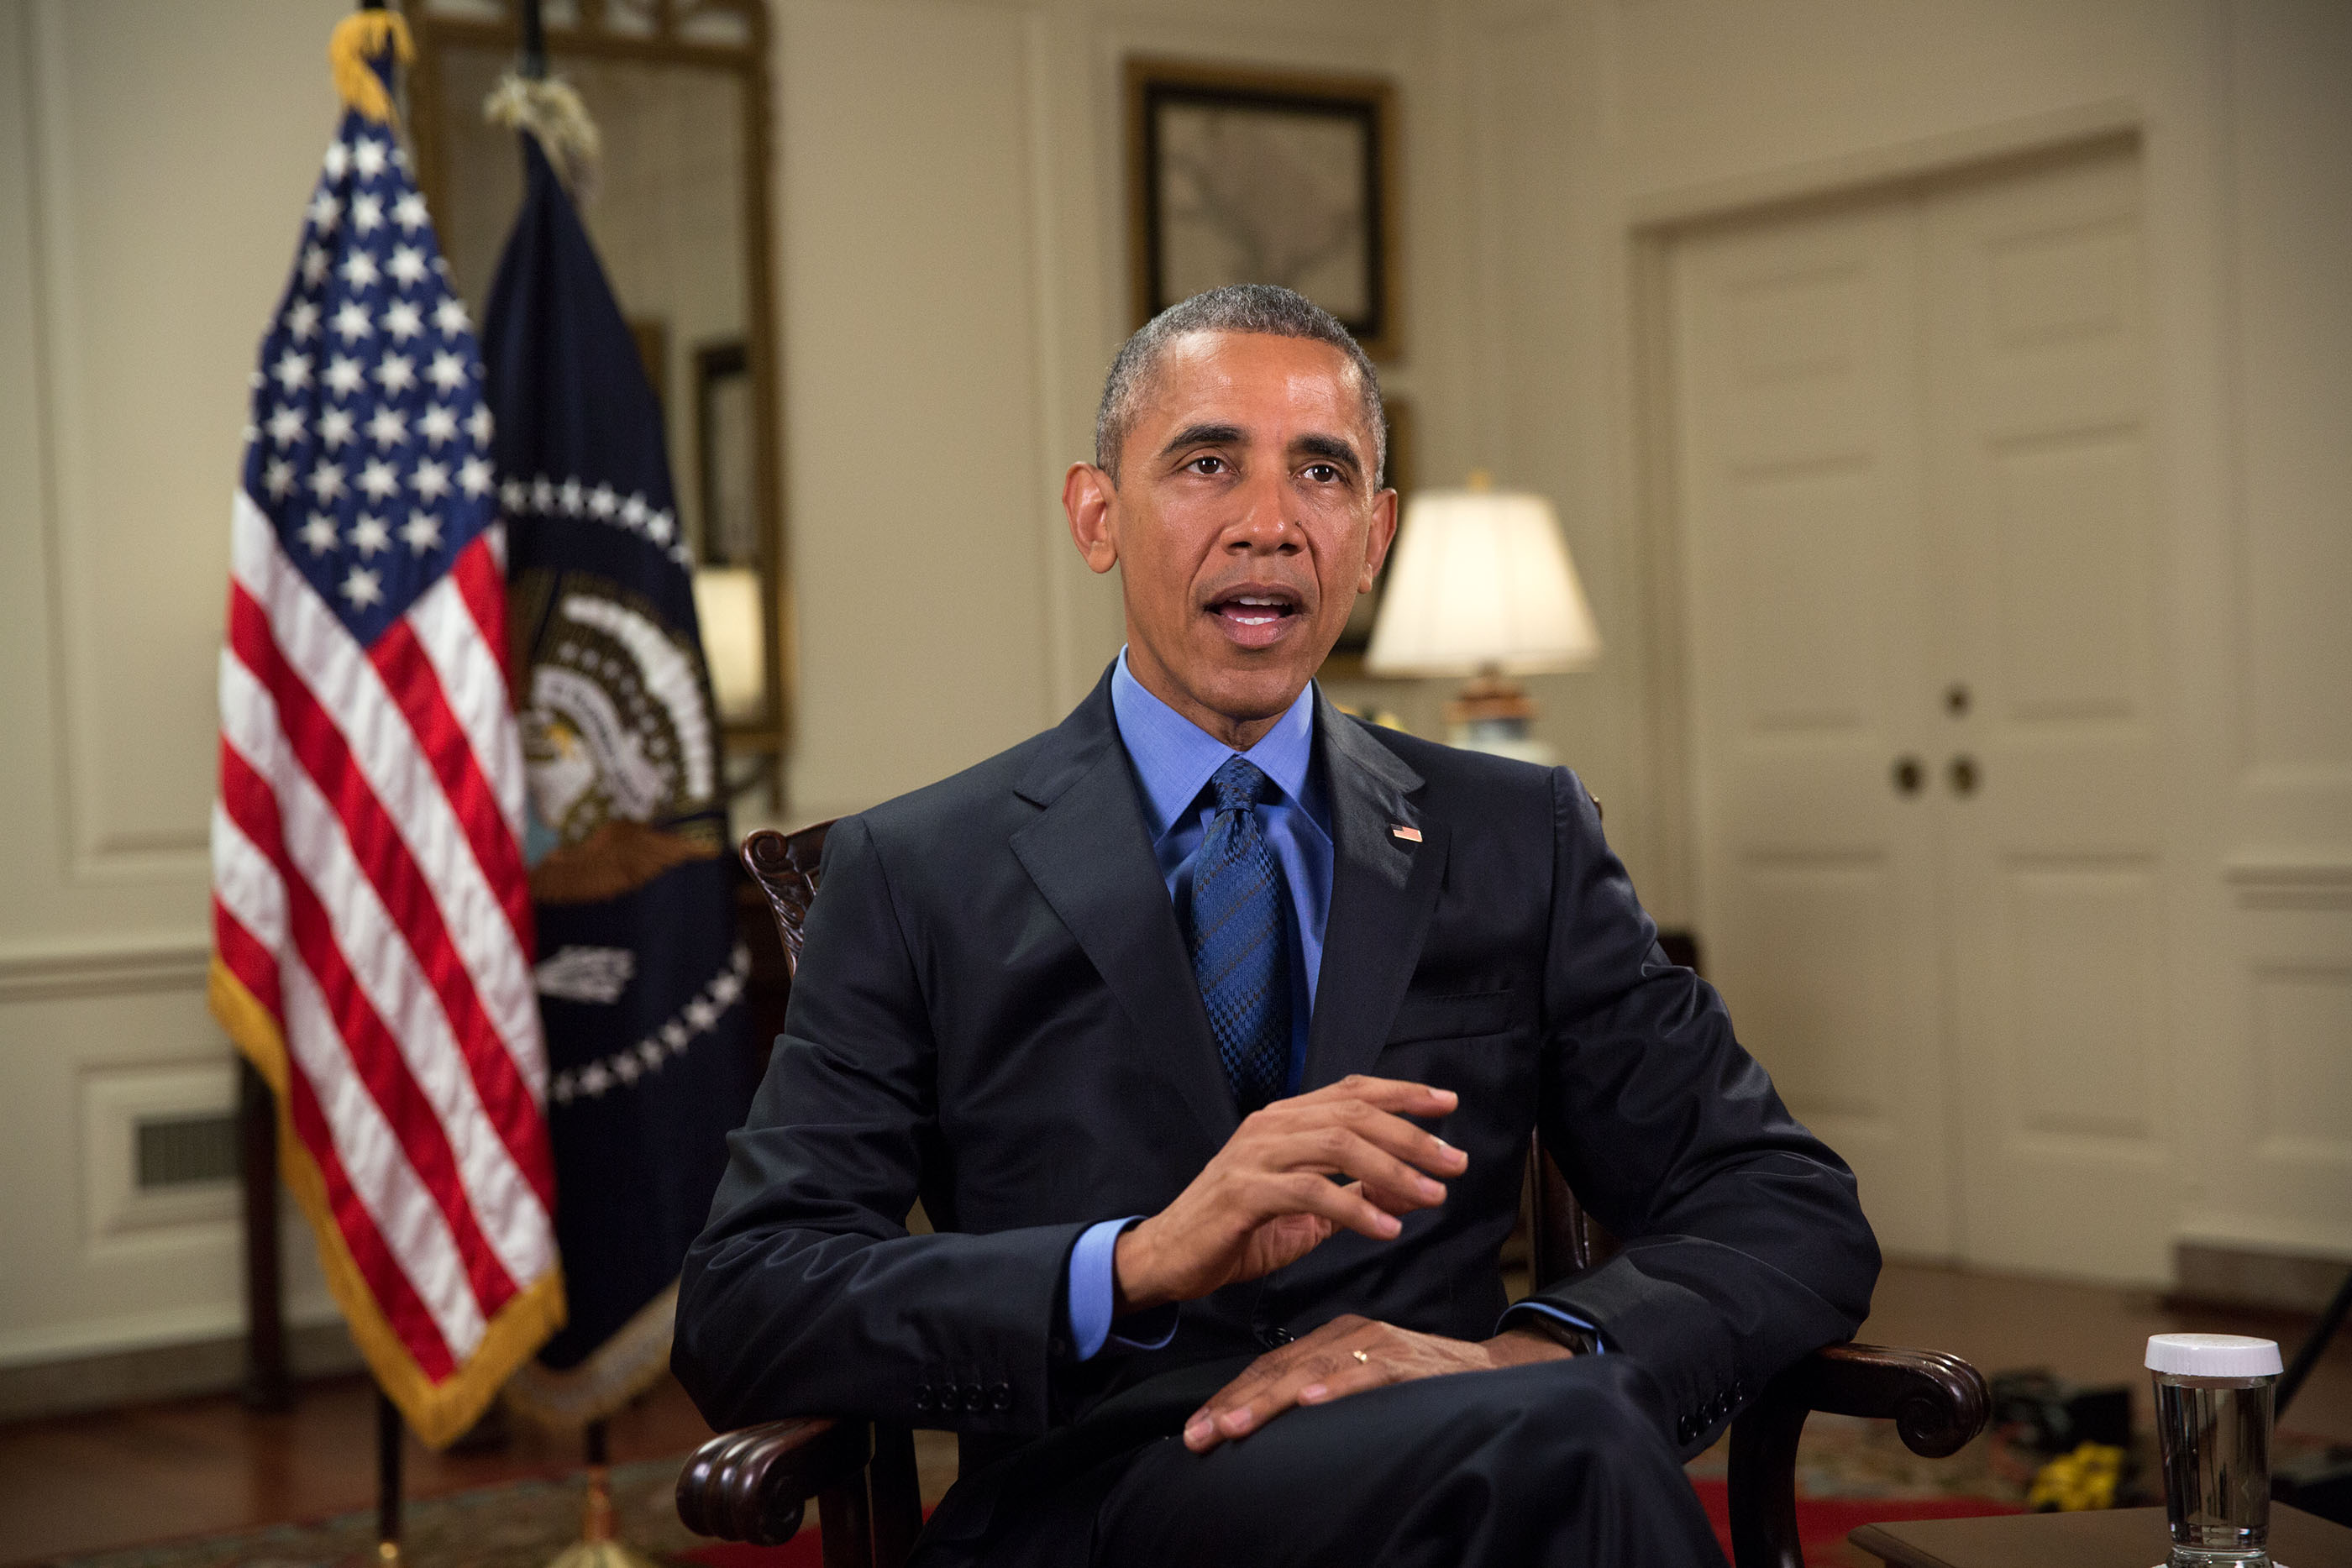 President Barack Obama tapes the Weekly Address in the Map Room of the White House, June 18, 2015